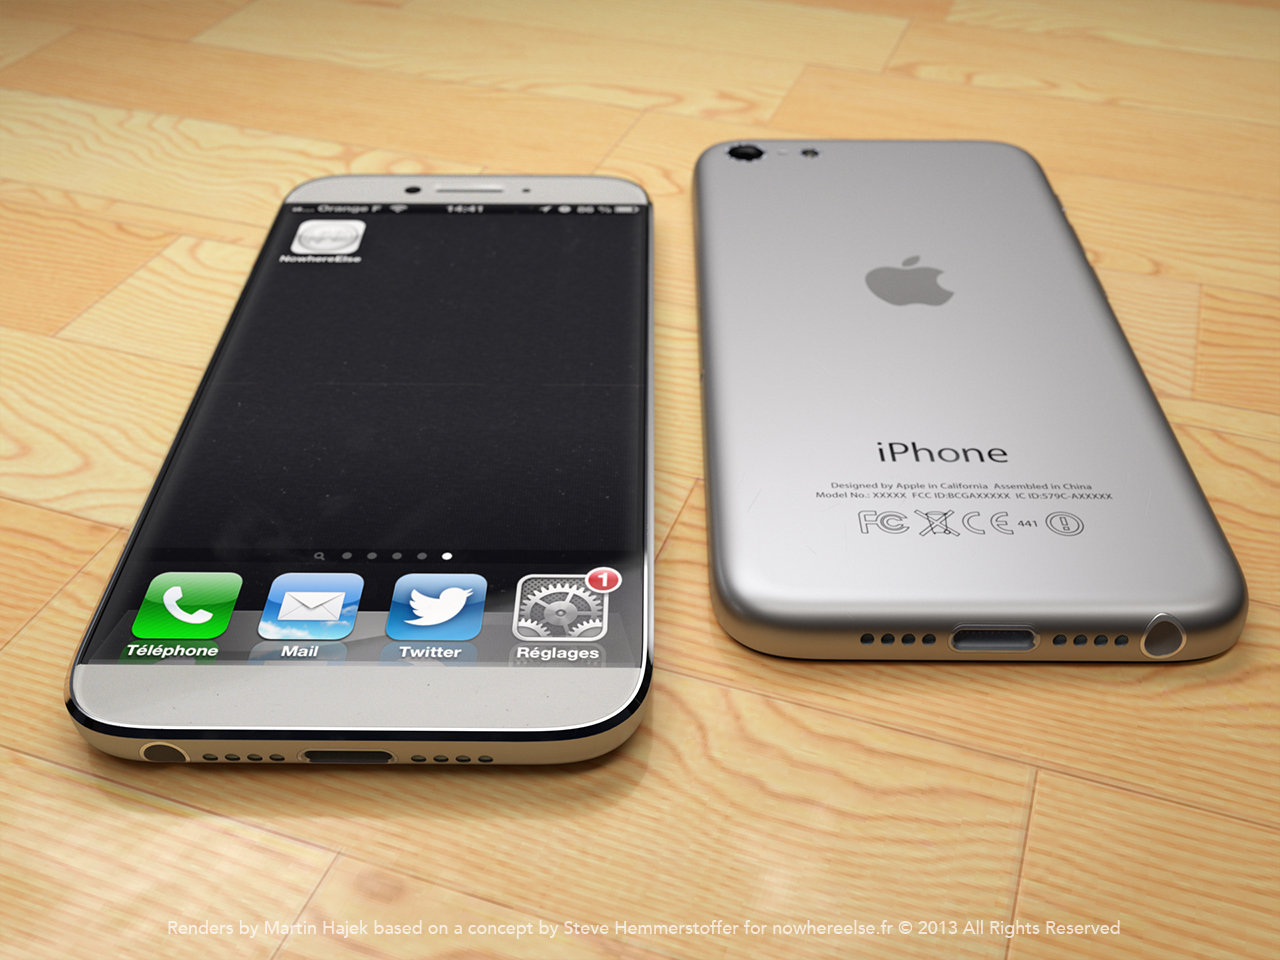 Another shot of the iPhone 6 concept.